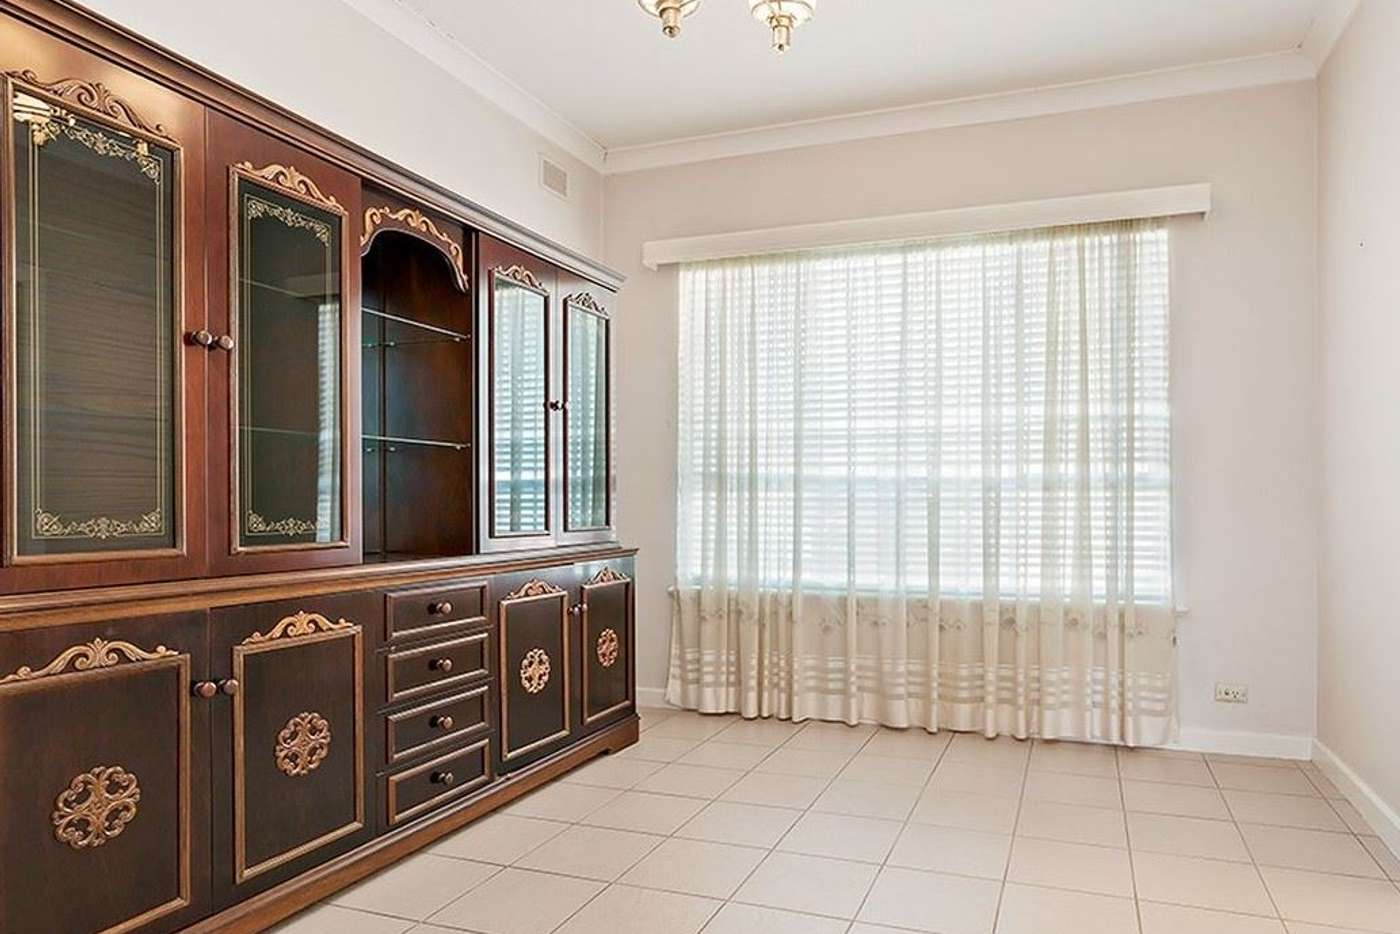 Fifth view of Homely house listing, 8 Wattle Street, Campbelltown SA 5074